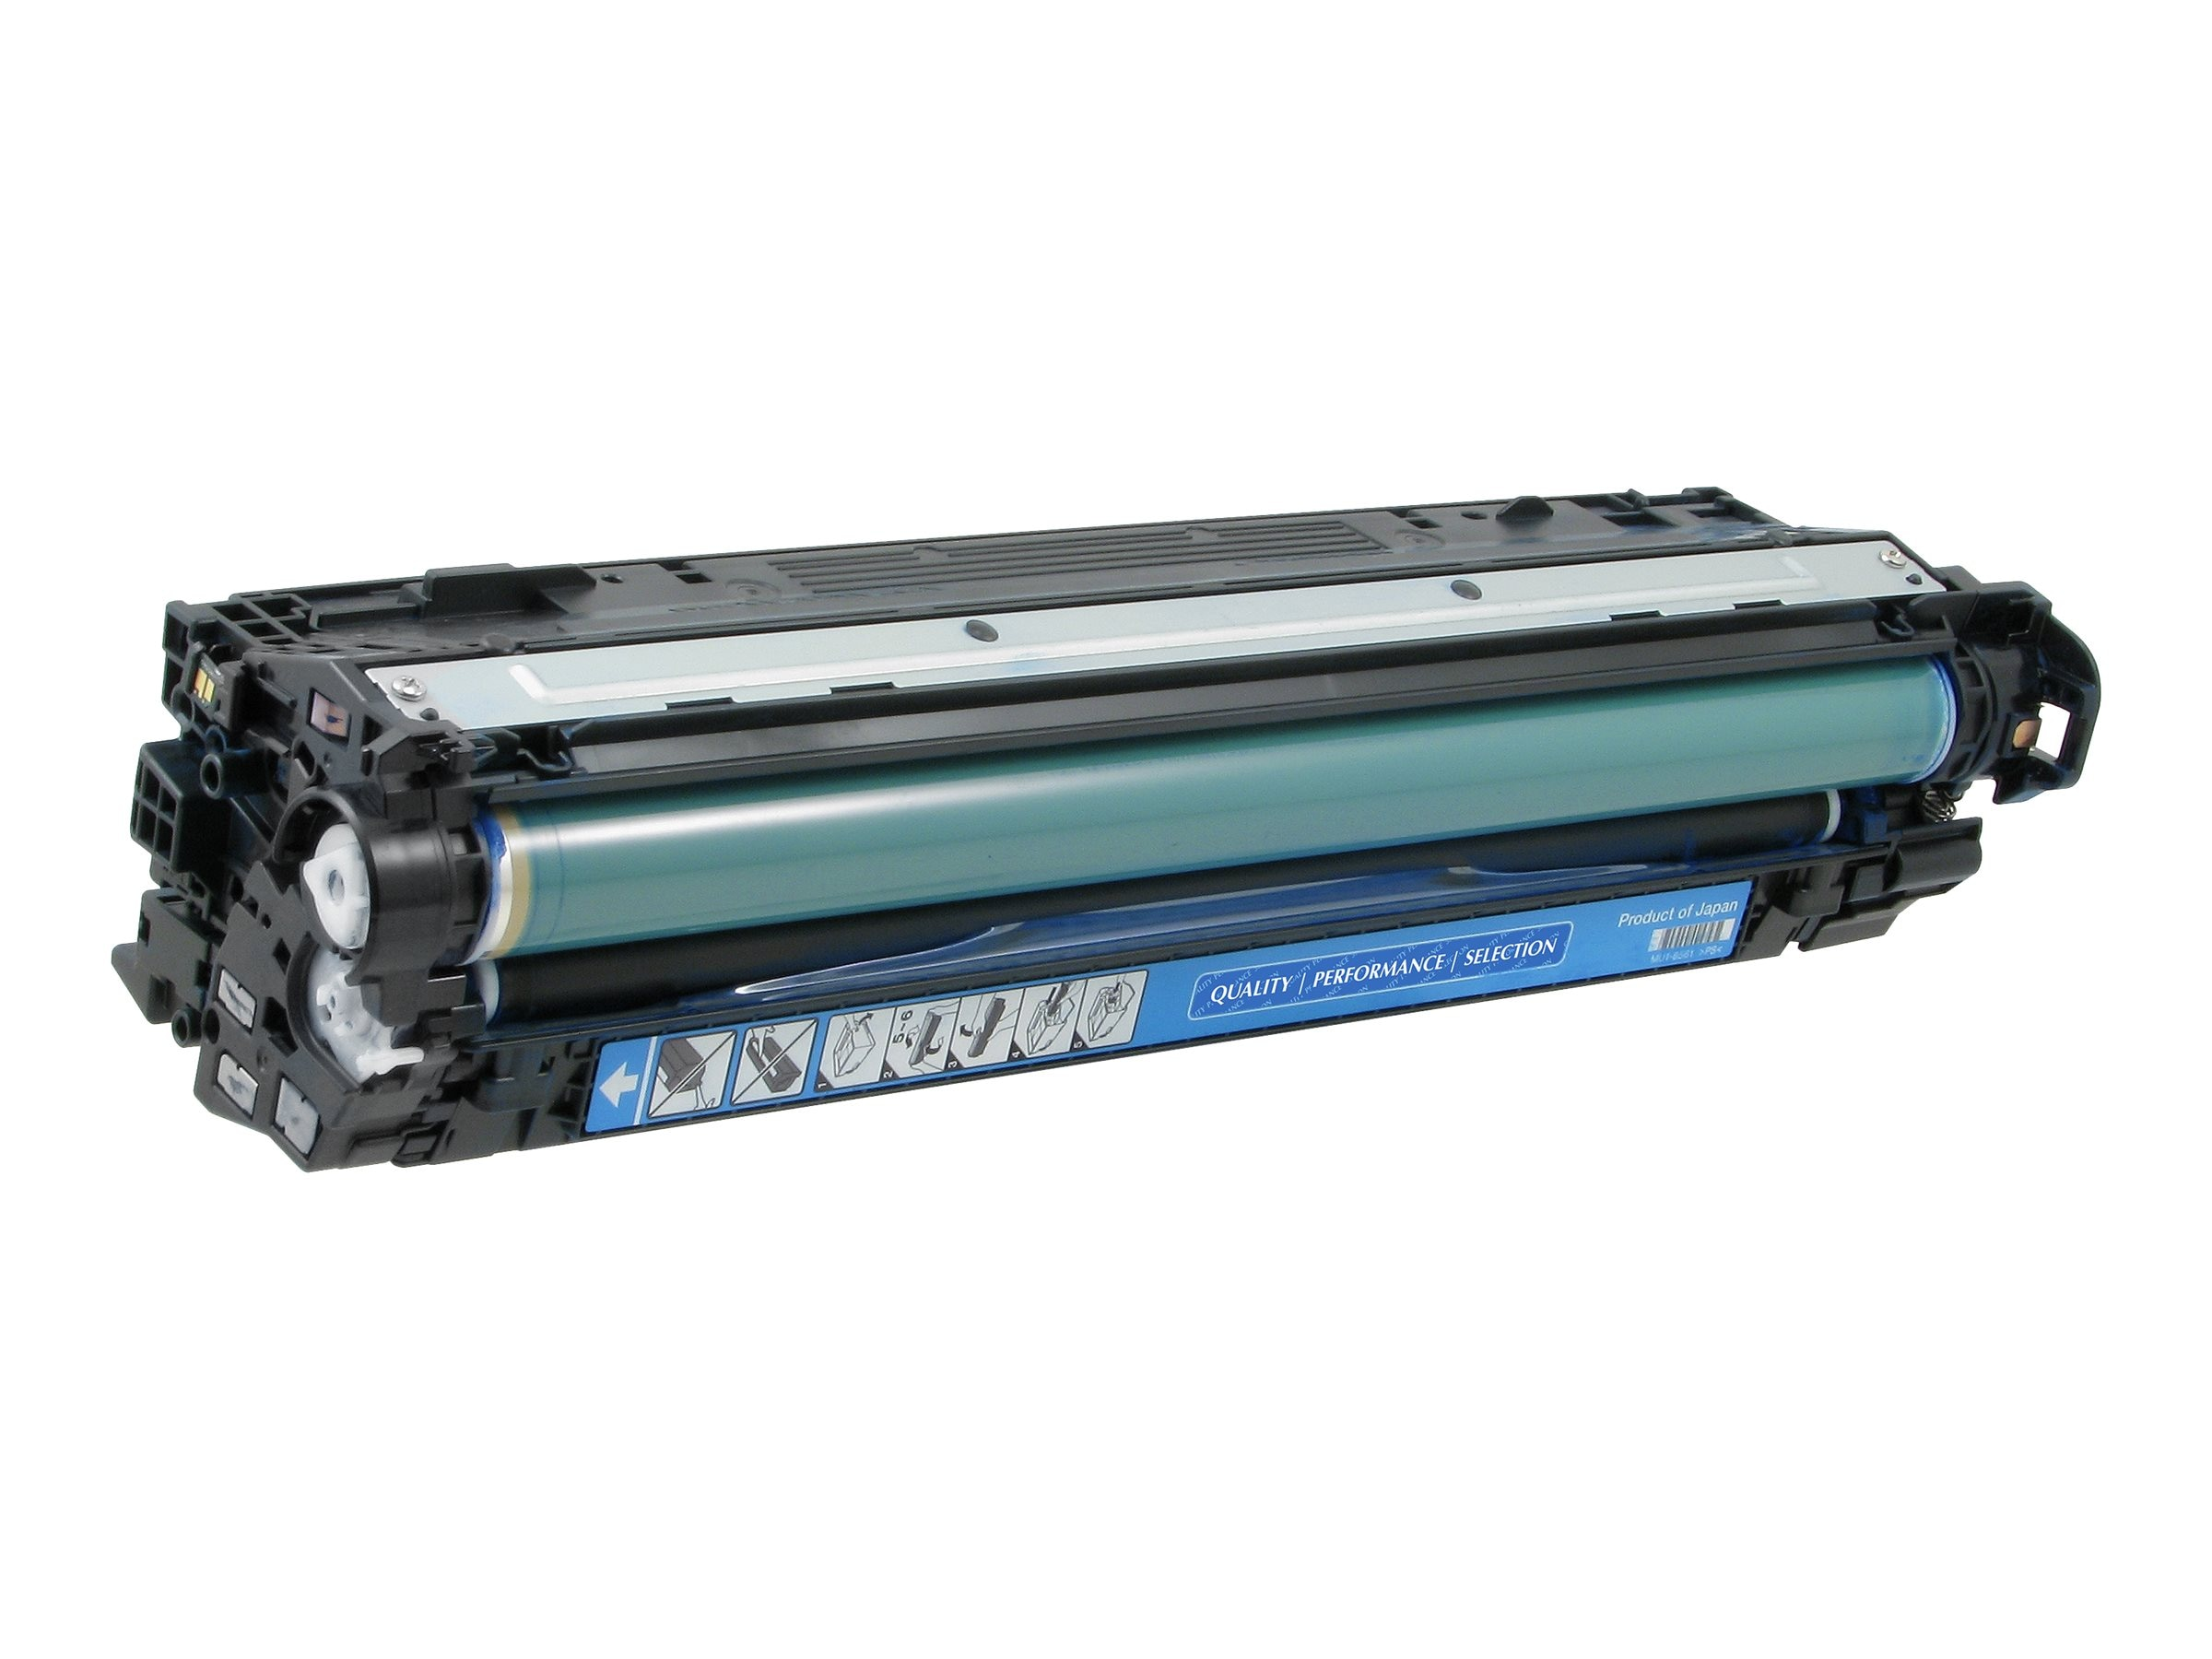 V7 CE741A Cyan Toner Cartridge for Hp Color LaserJet CP5520, V75220C